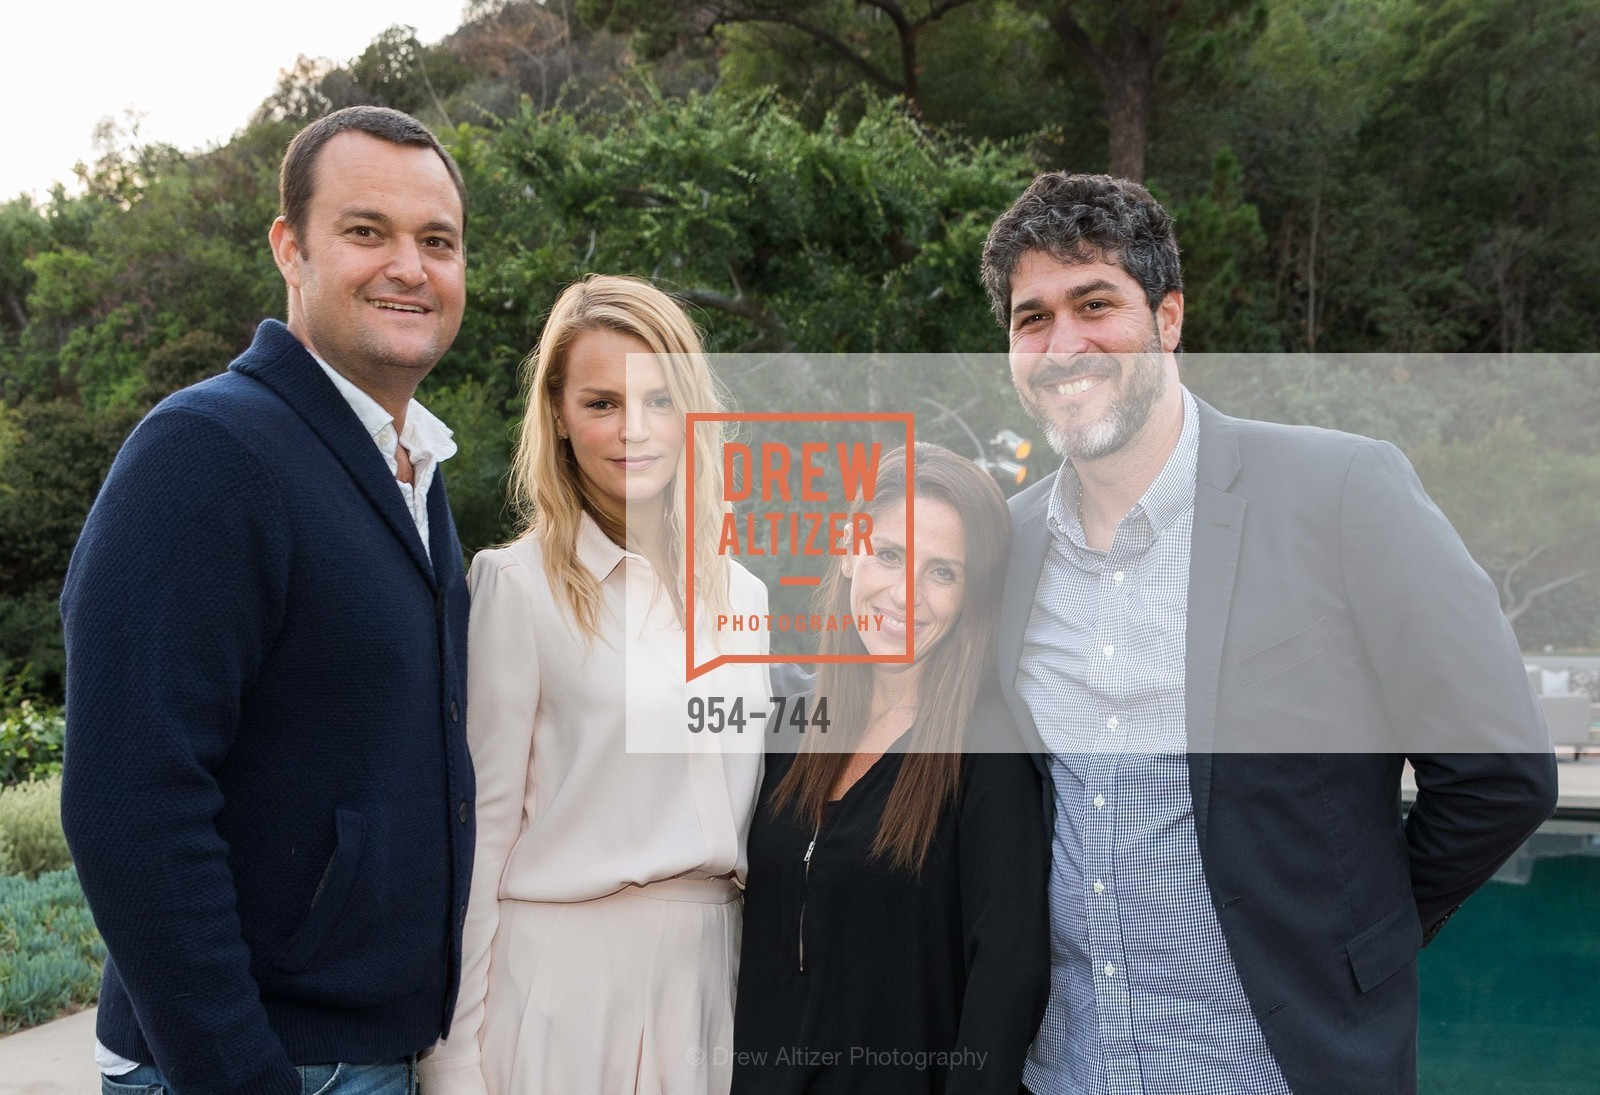 Jamie Patricof, Kely Sawyer Patricof, Soleil Moon Frye, Jason Goldberg, Celebration of Launch of SHYP in Los Angeles, US, May 20th, 2015,Drew Altizer, Drew Altizer Photography, full-service agency, private events, San Francisco photographer, photographer california